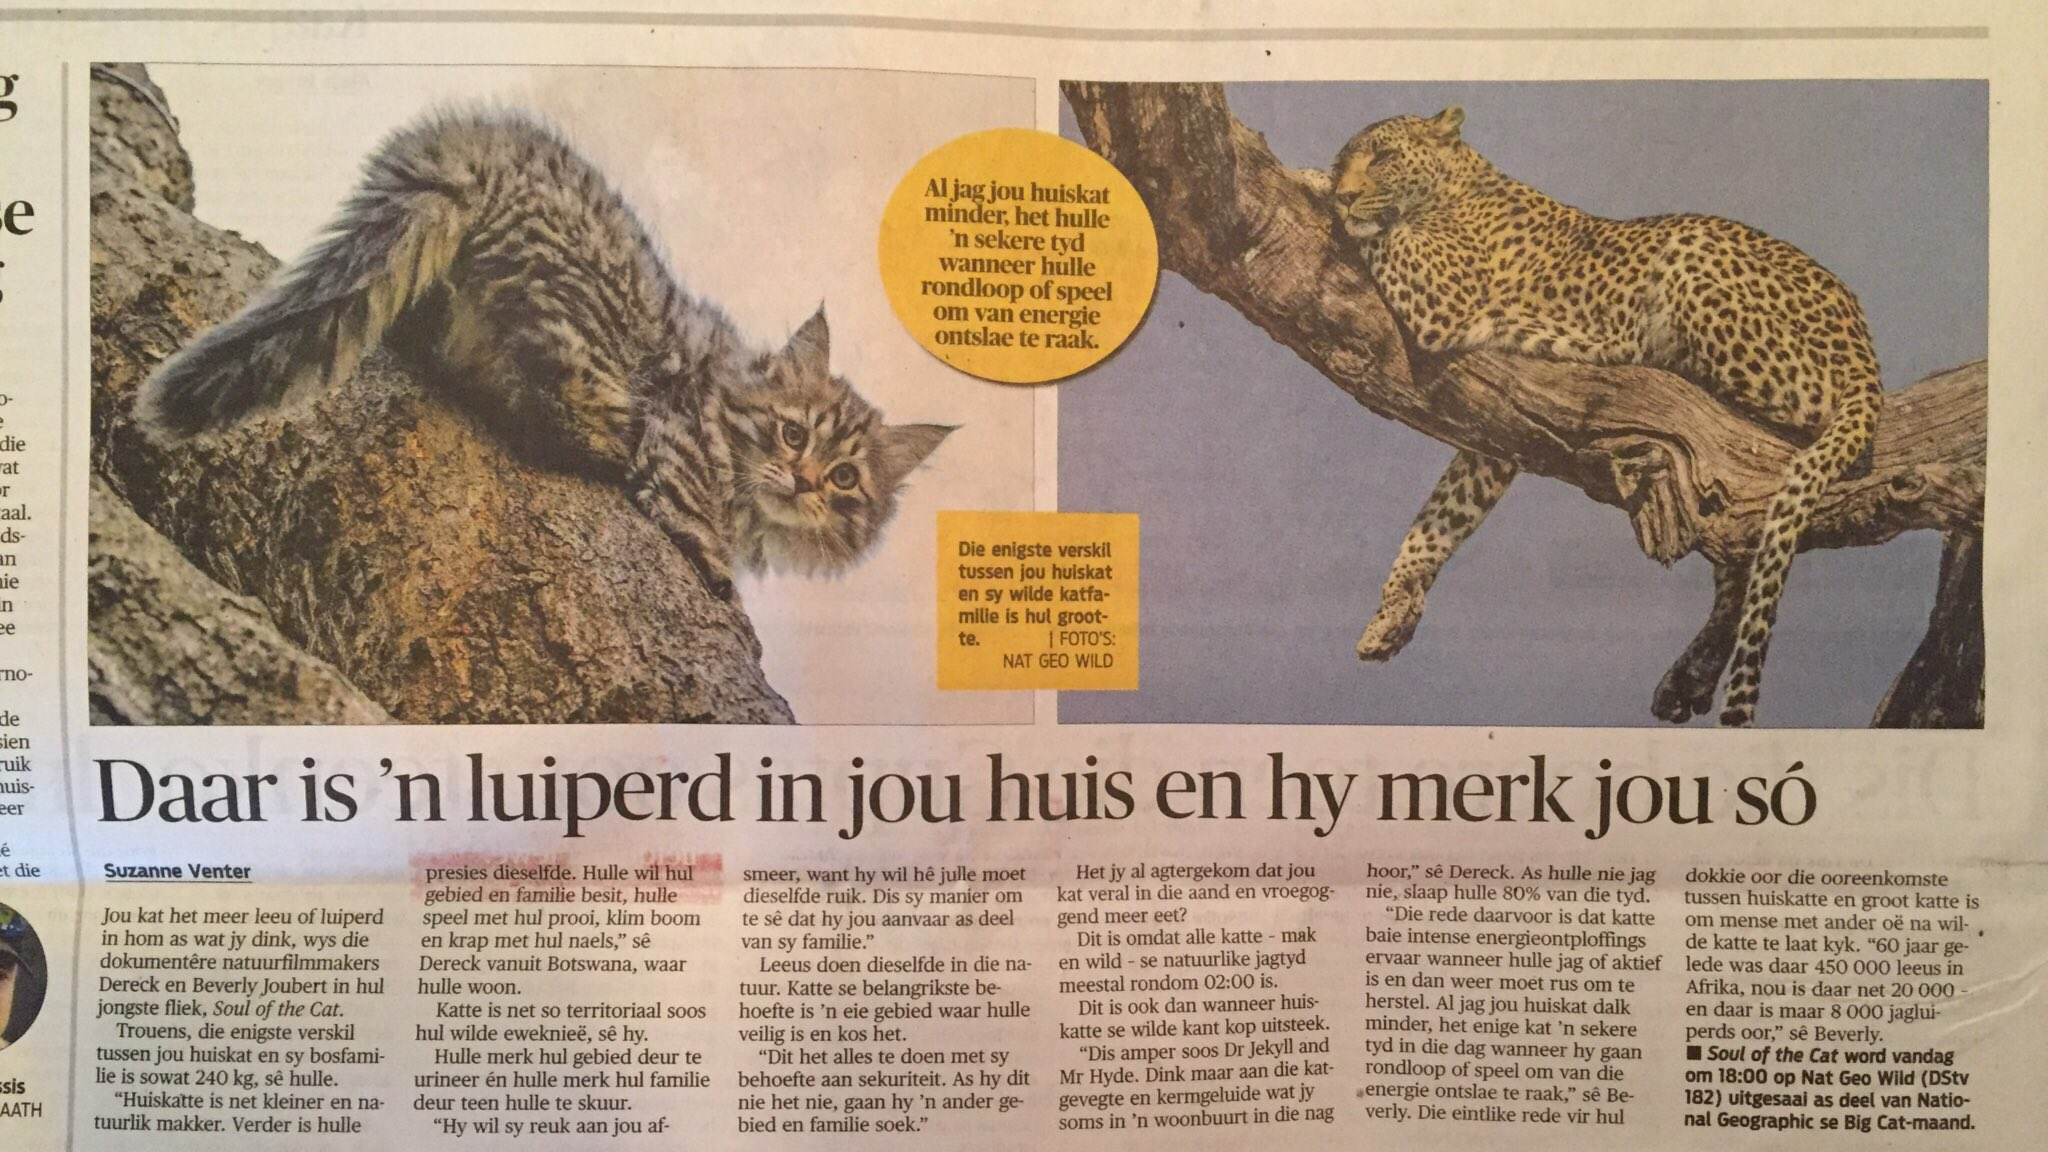 The greenhouse pr - Greenhouse Pr On Twitter Thank You Rapportsa Suzanneventer Incredible Interview With Dereckbeverly Re Soulofthecat Natgeoafrica 6pm Tonight